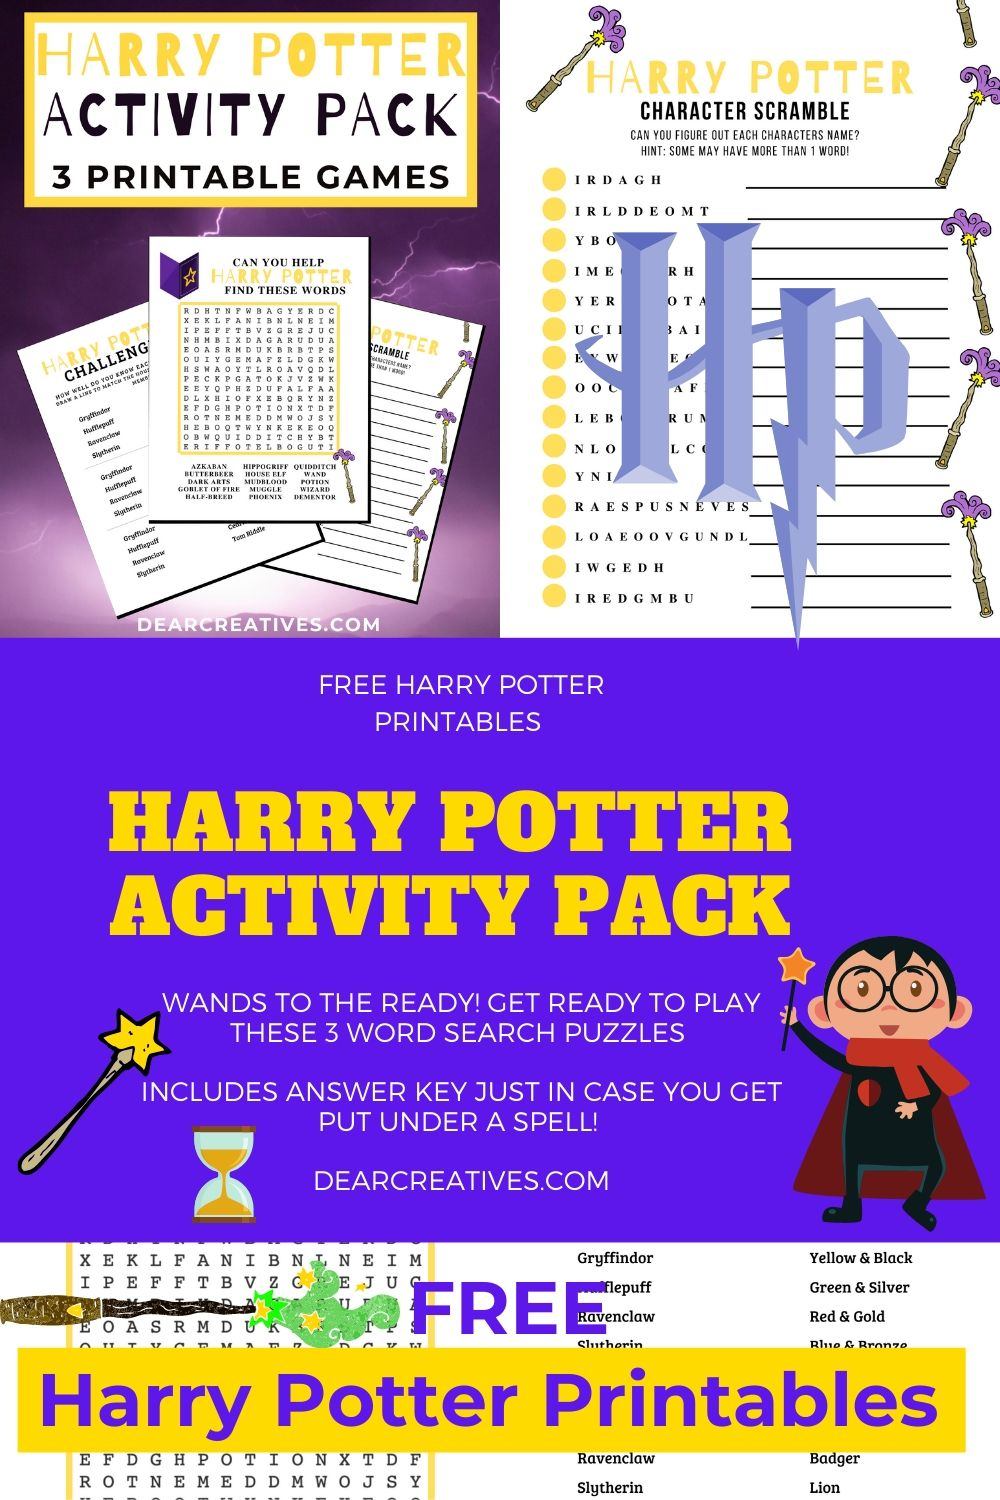 Harry Potter Printables - Harry Potter Word Search, Character Scramble and Harry Potter Knowledge Challenge - DearCreatives.com